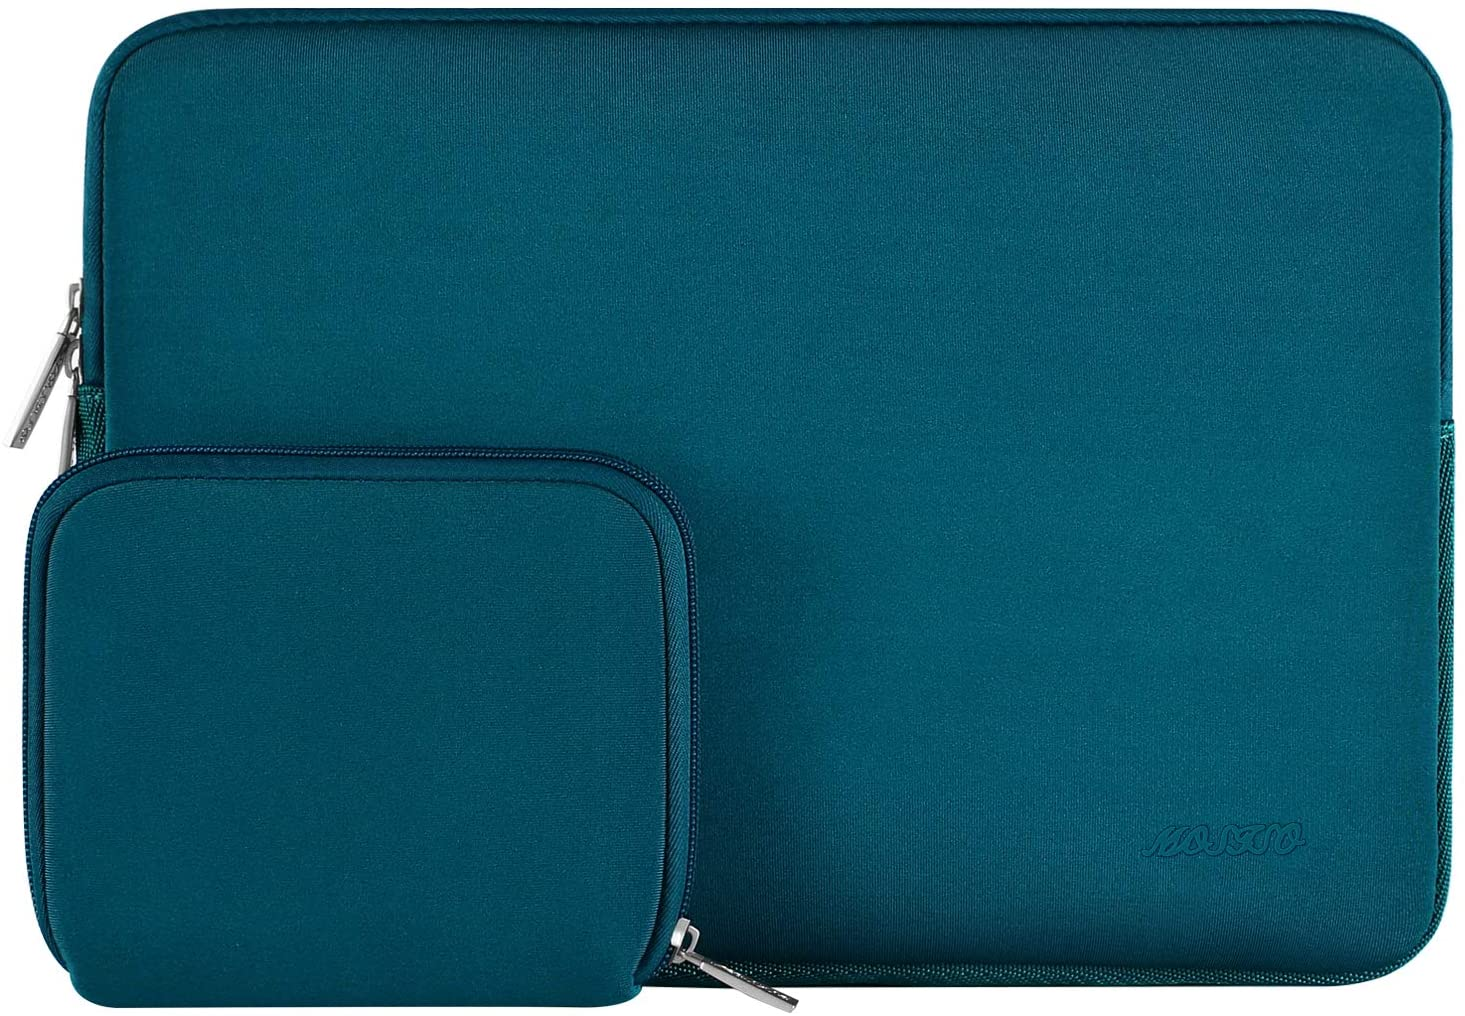 MOSISO Laptop Sleeve Compatible with 2019 MacBook Pro 16 inch Touch Bar A2141, 15-15.6 inch MacBook Pro Retina 2012-2015, Notebook, Water Repellent Neoprene Bag with Small Case, Deep Teal